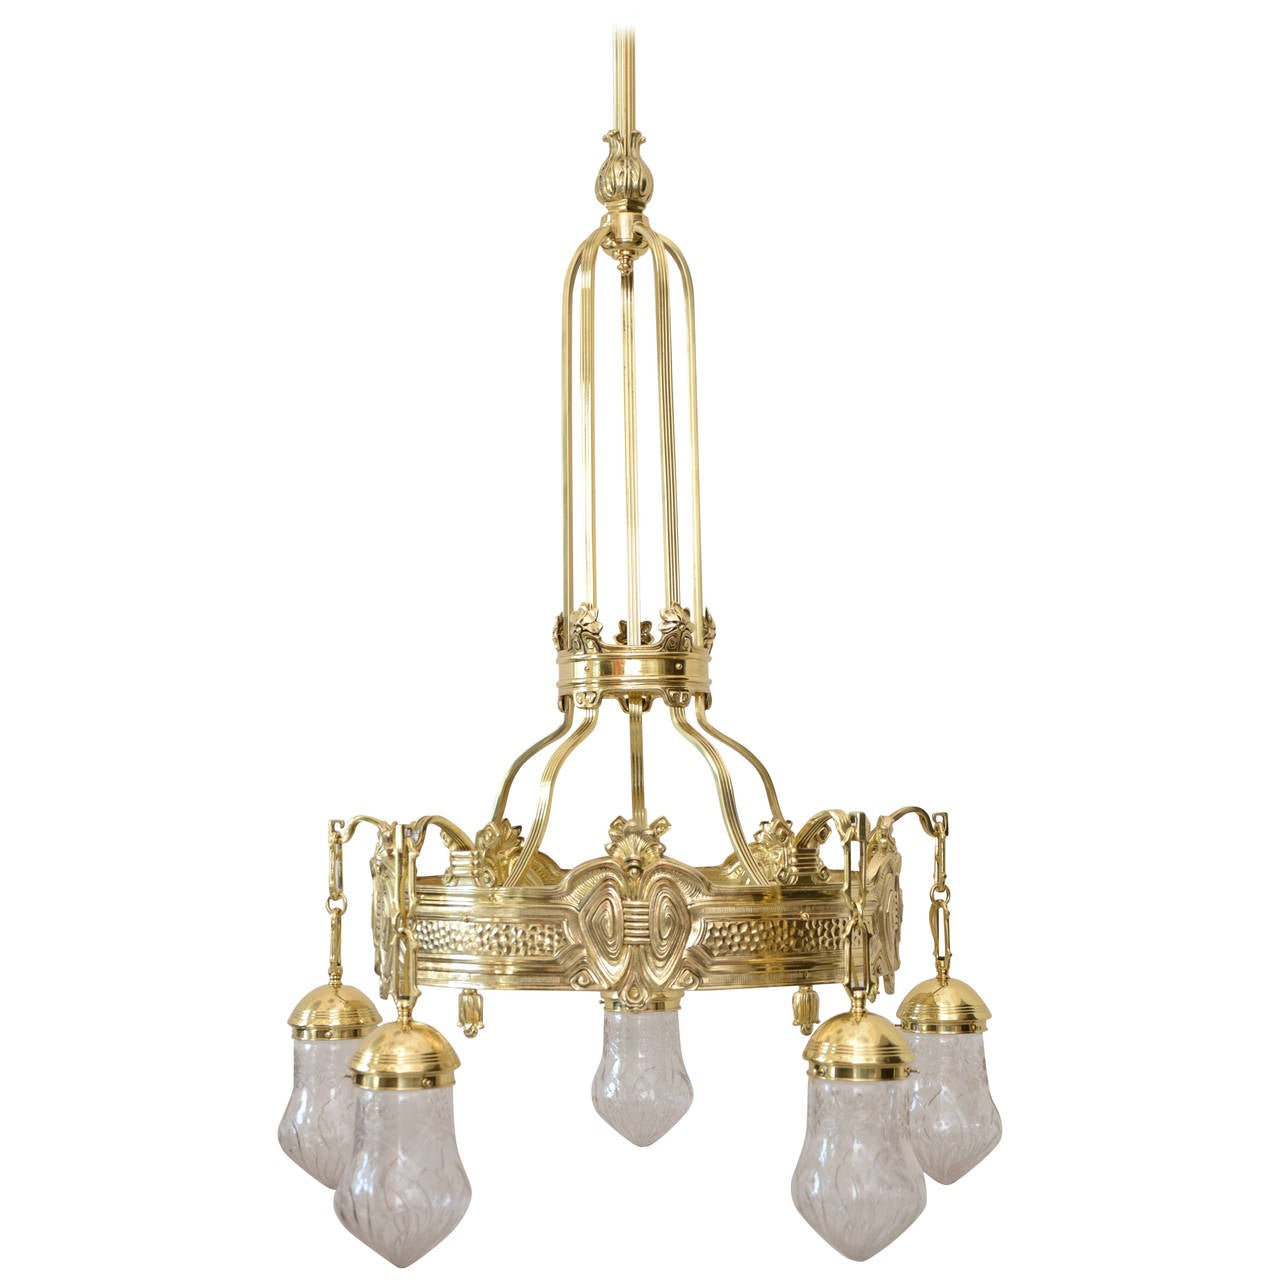 Large historistic chandelier circa 1890 for sale at 1stdibs - Circa lighting chandeliers ...